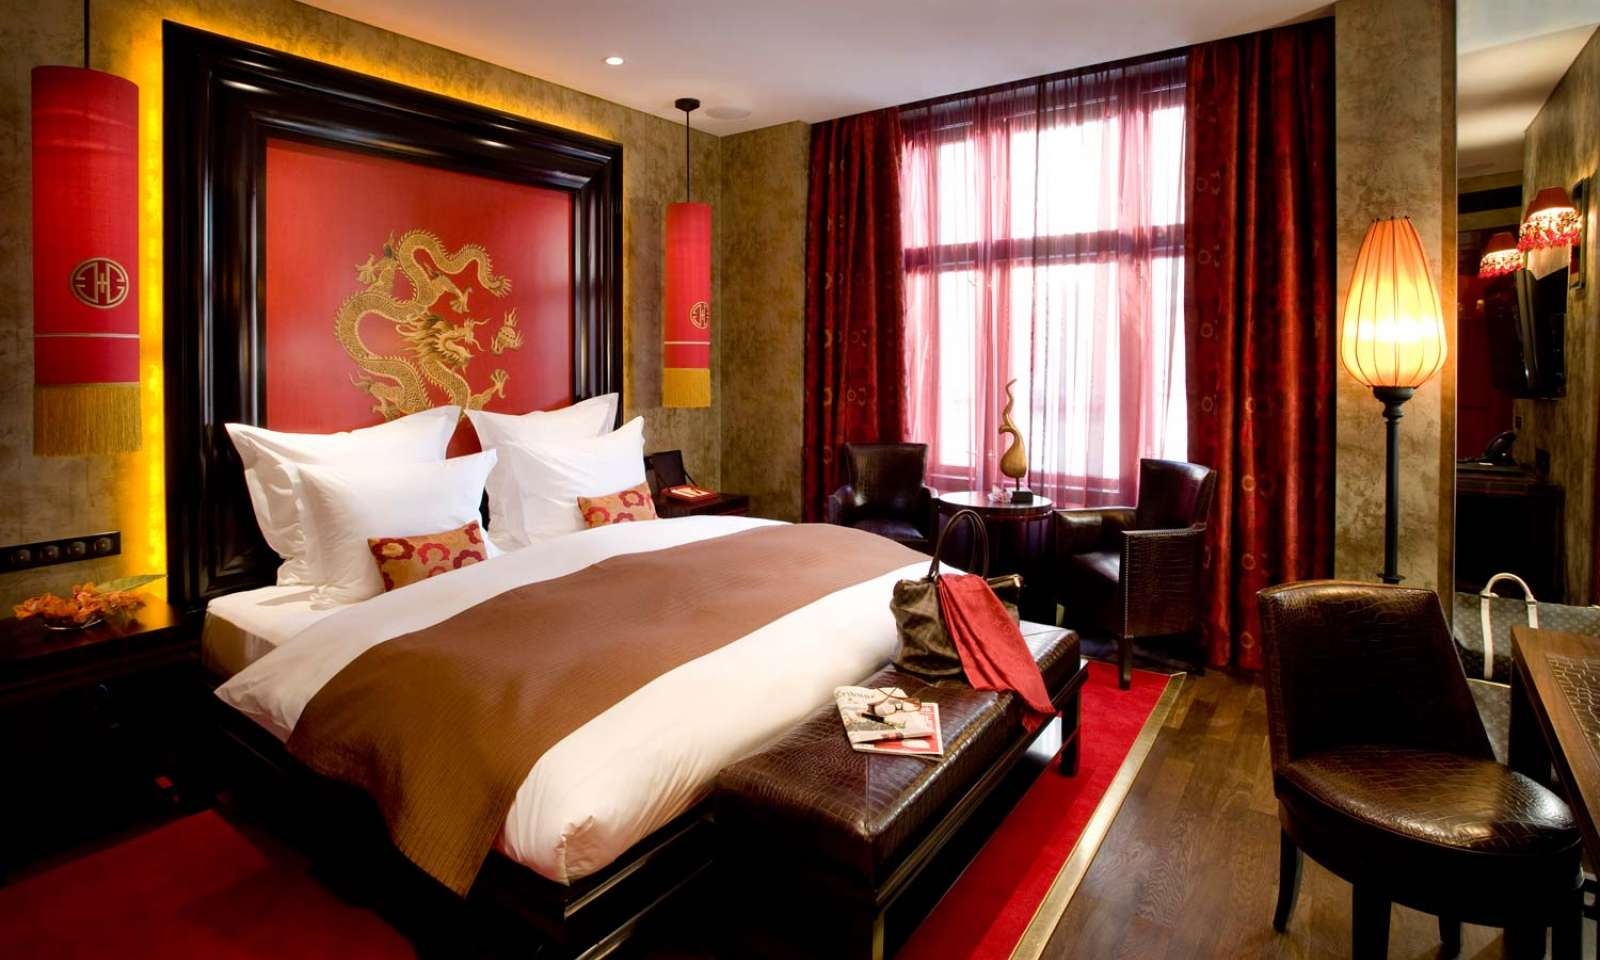 World visits 7 star hotels luxury rooms fantastic collection for Hotel bedroom designs pictures